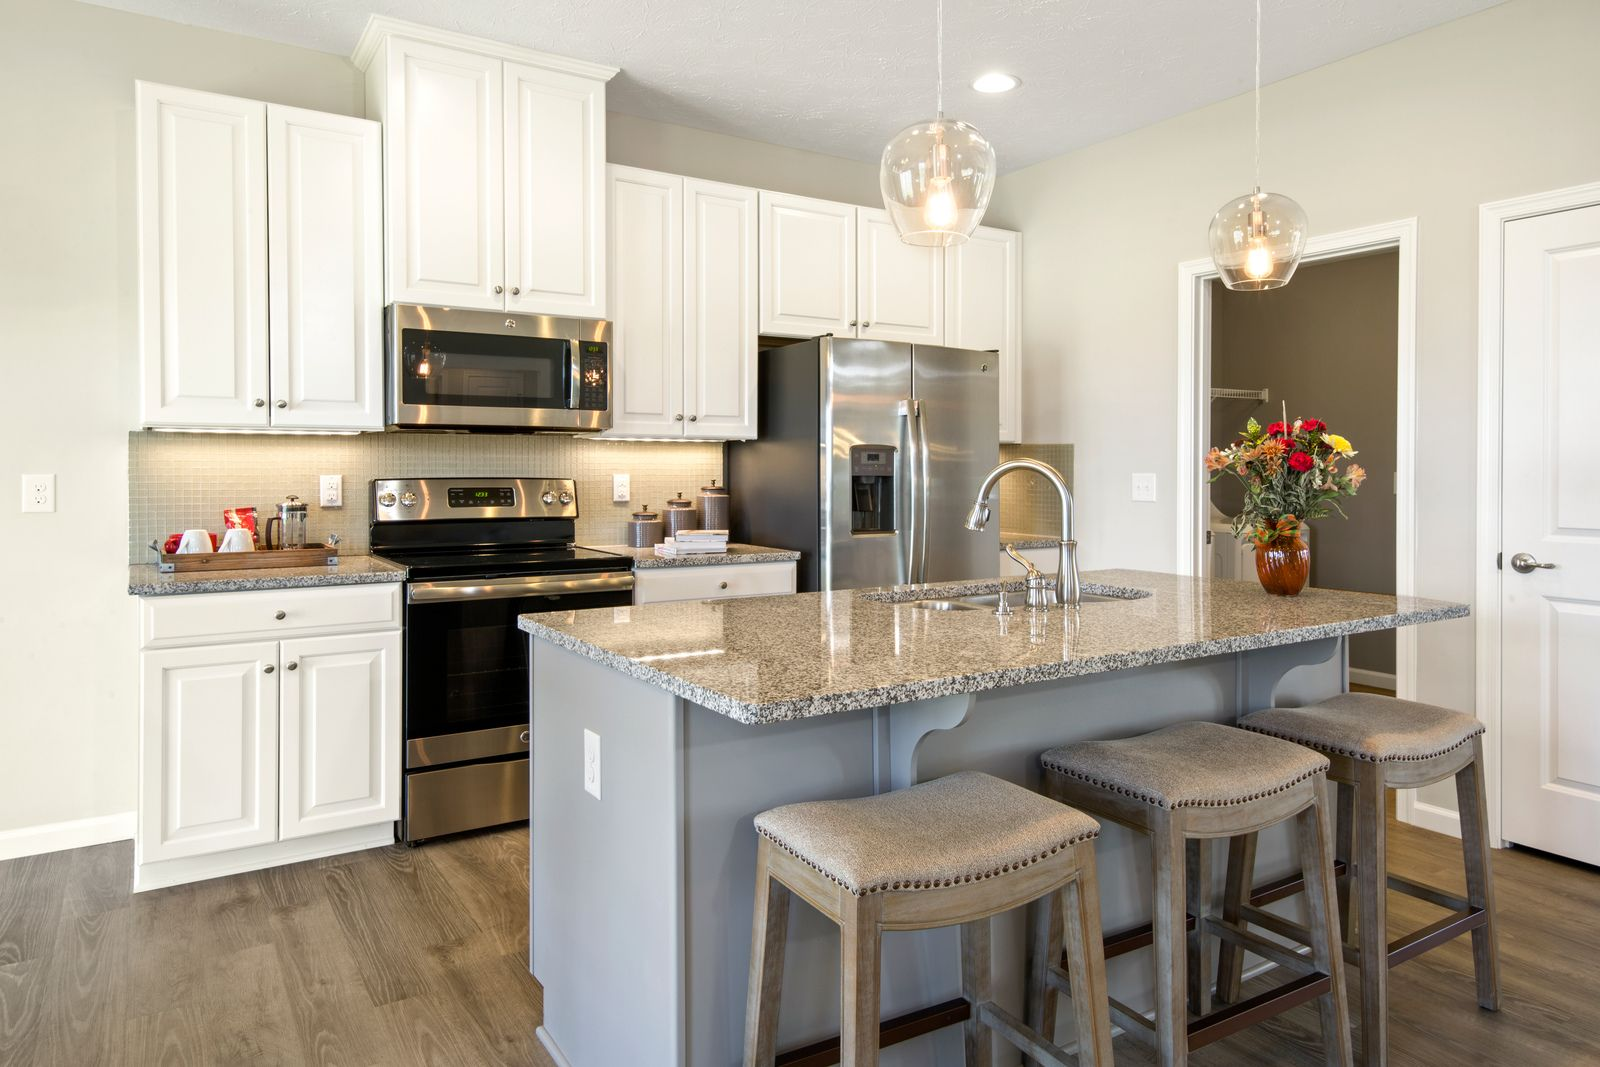 Kitchen featured in the Aviano By Ryan Homes in Cincinnati, OH